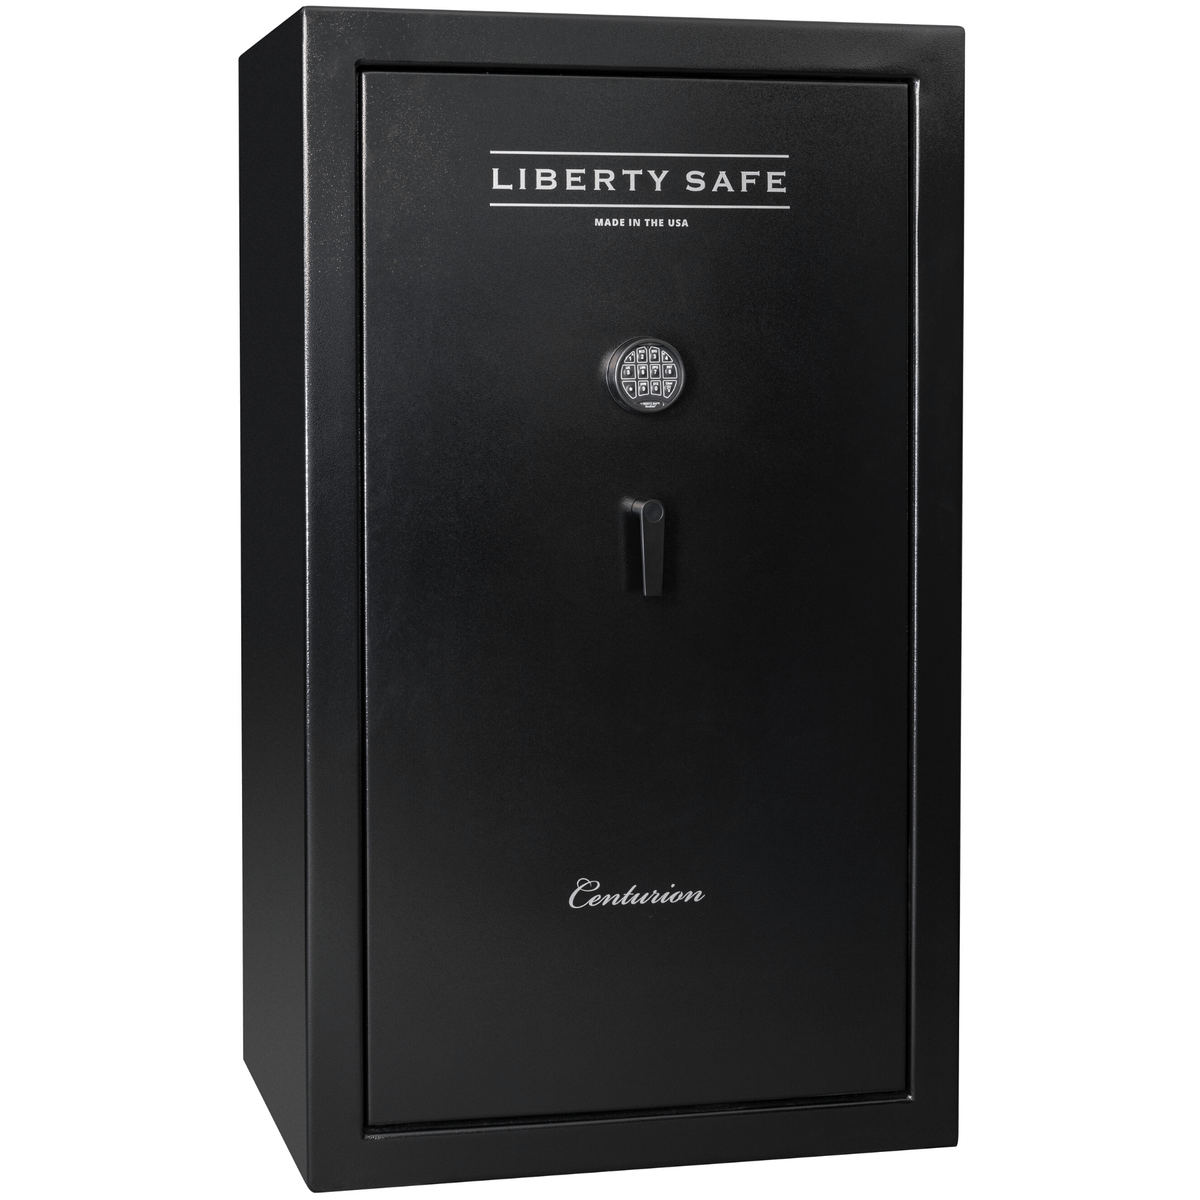 Centurion Series | Level 1 Security | 30 Minute Fire Protection